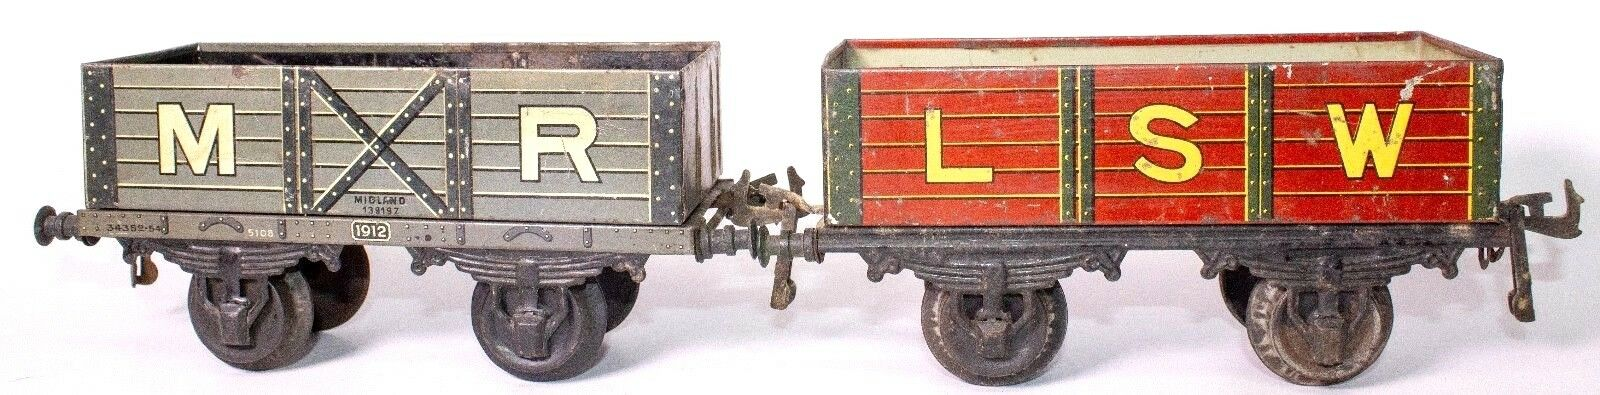 VINTAGE PREWARE BING 1-GAUGE SET DI DUE MIDLe Railways MR E LSW GONDLAS